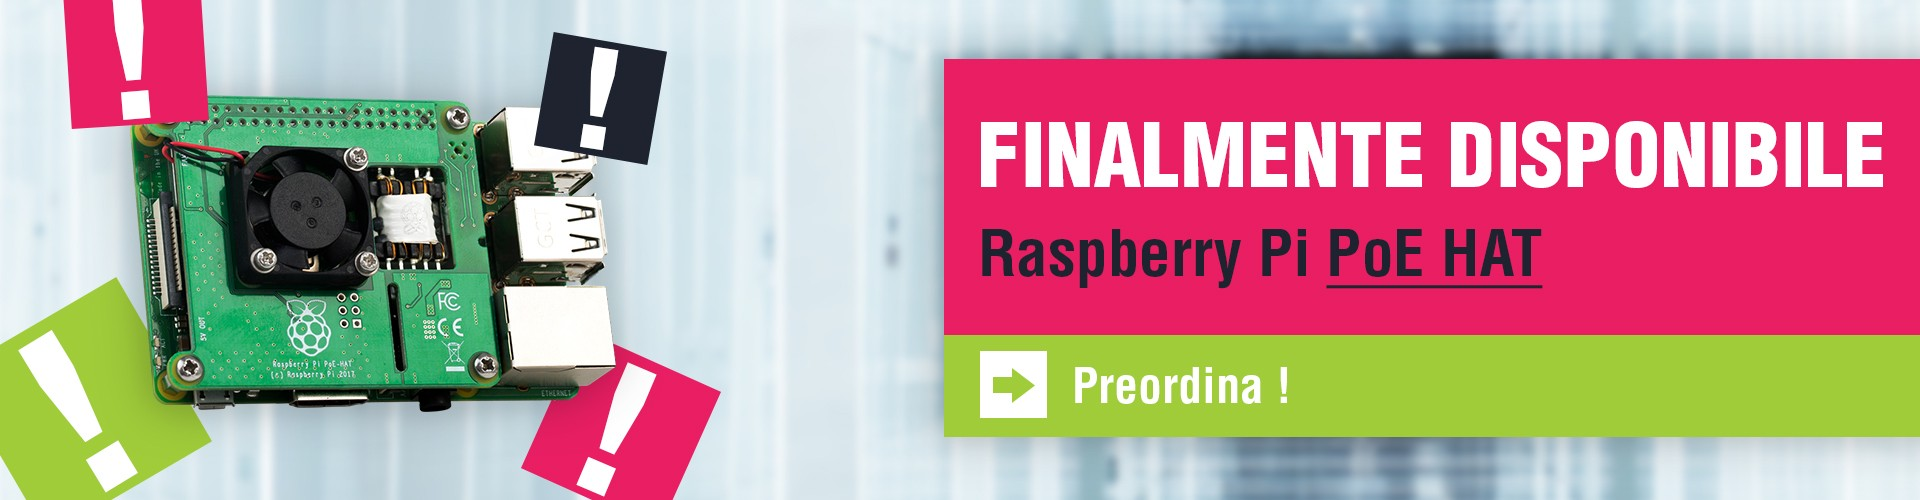 Finalmente disponibile Raspberry PoE Hat